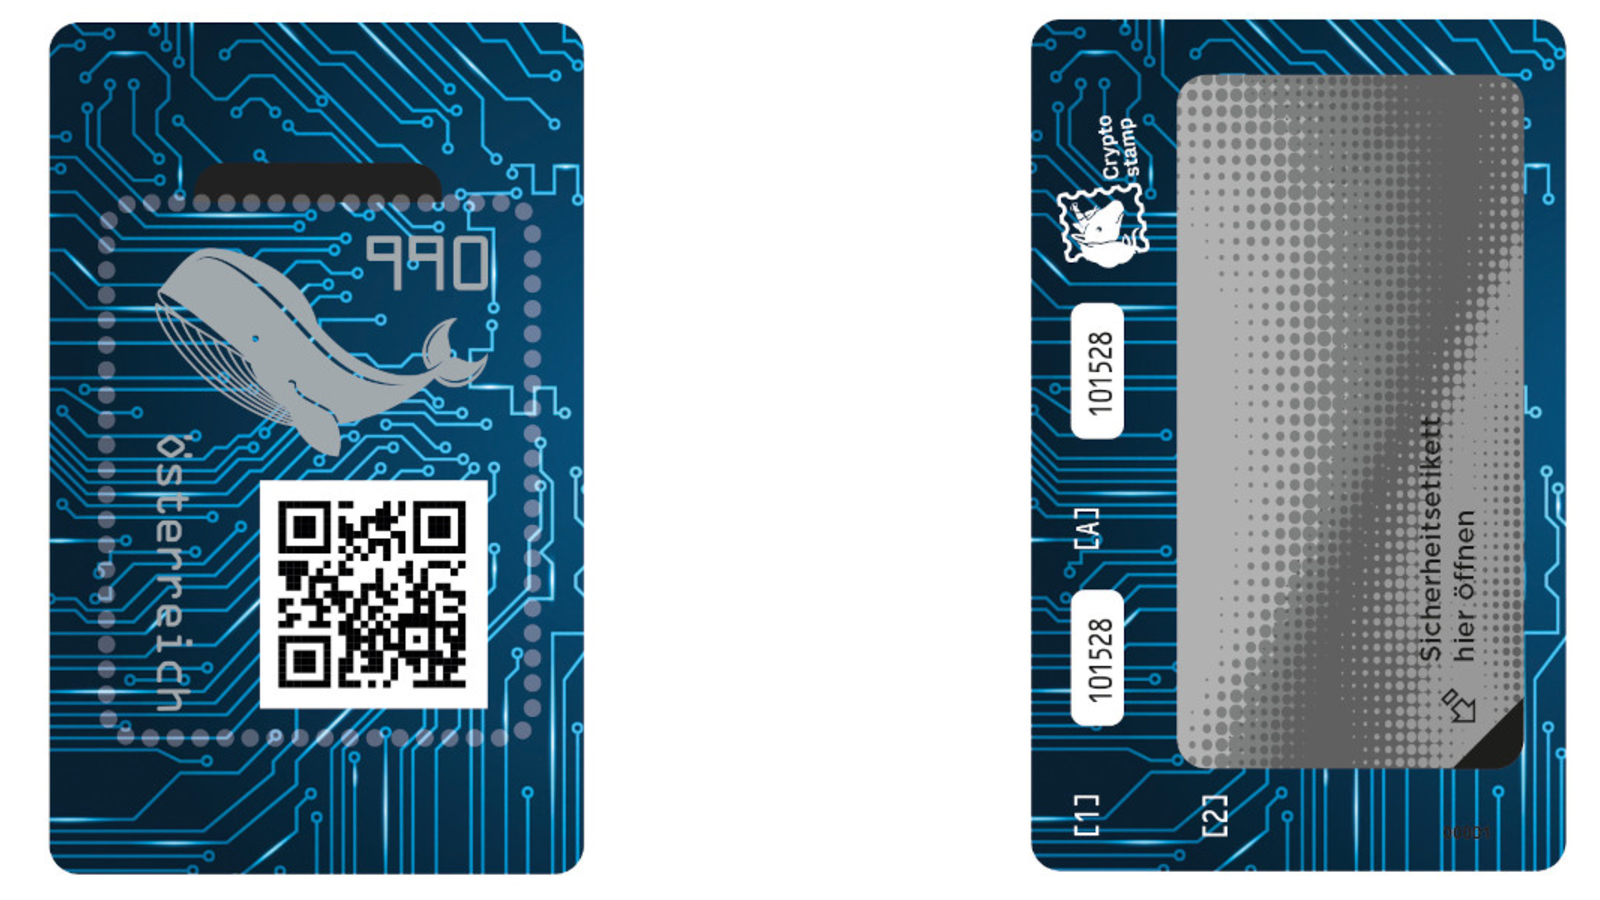 Post brings Digi postage with an NFC chip and encryption technology